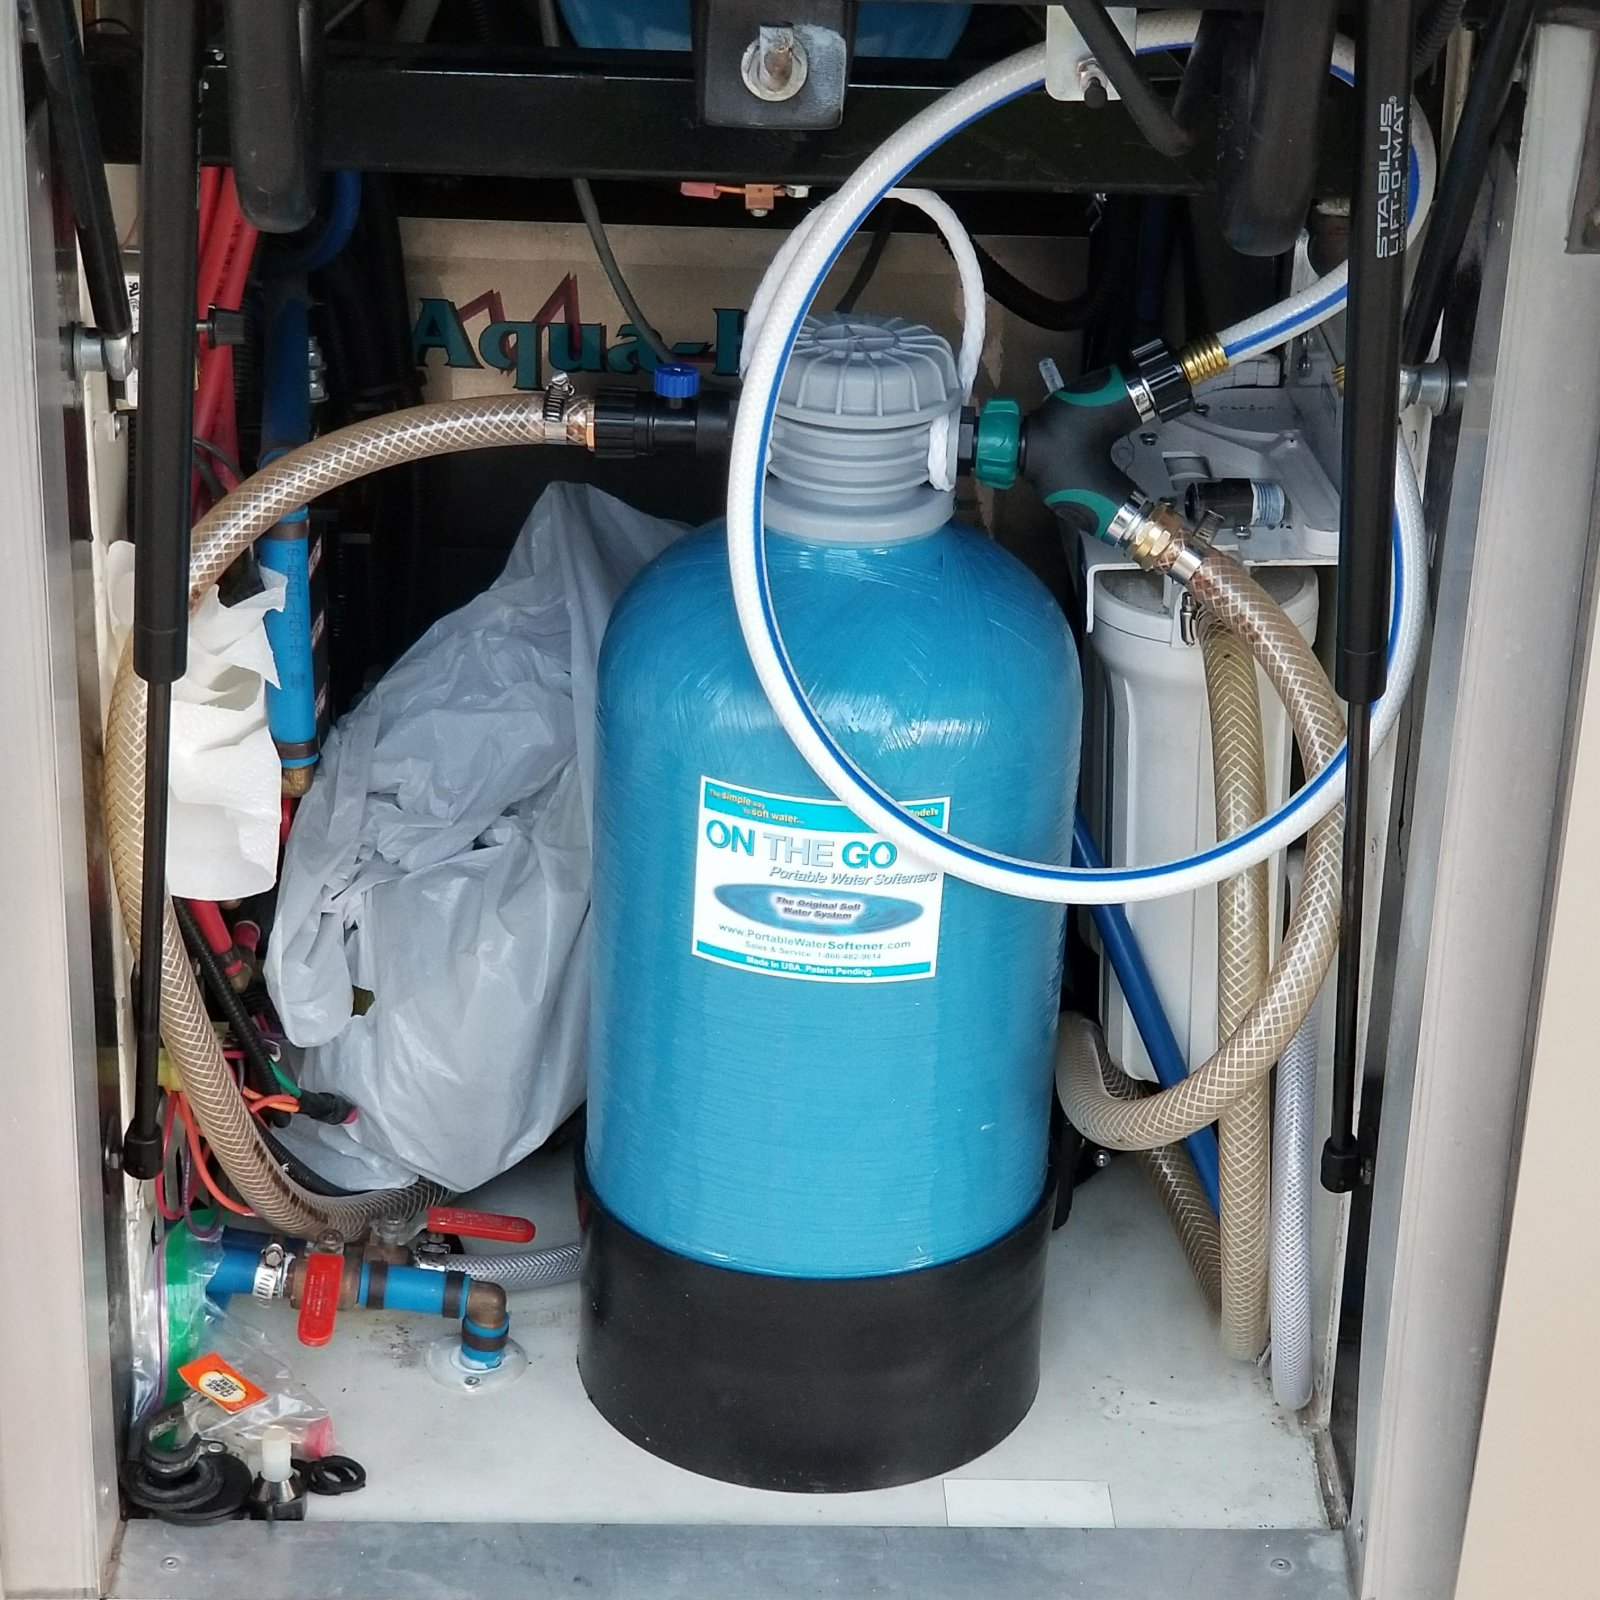 Click image for larger version  Name:Water Softener On the Go installed.jpg Views:84 Size:418.1 KB ID:211592